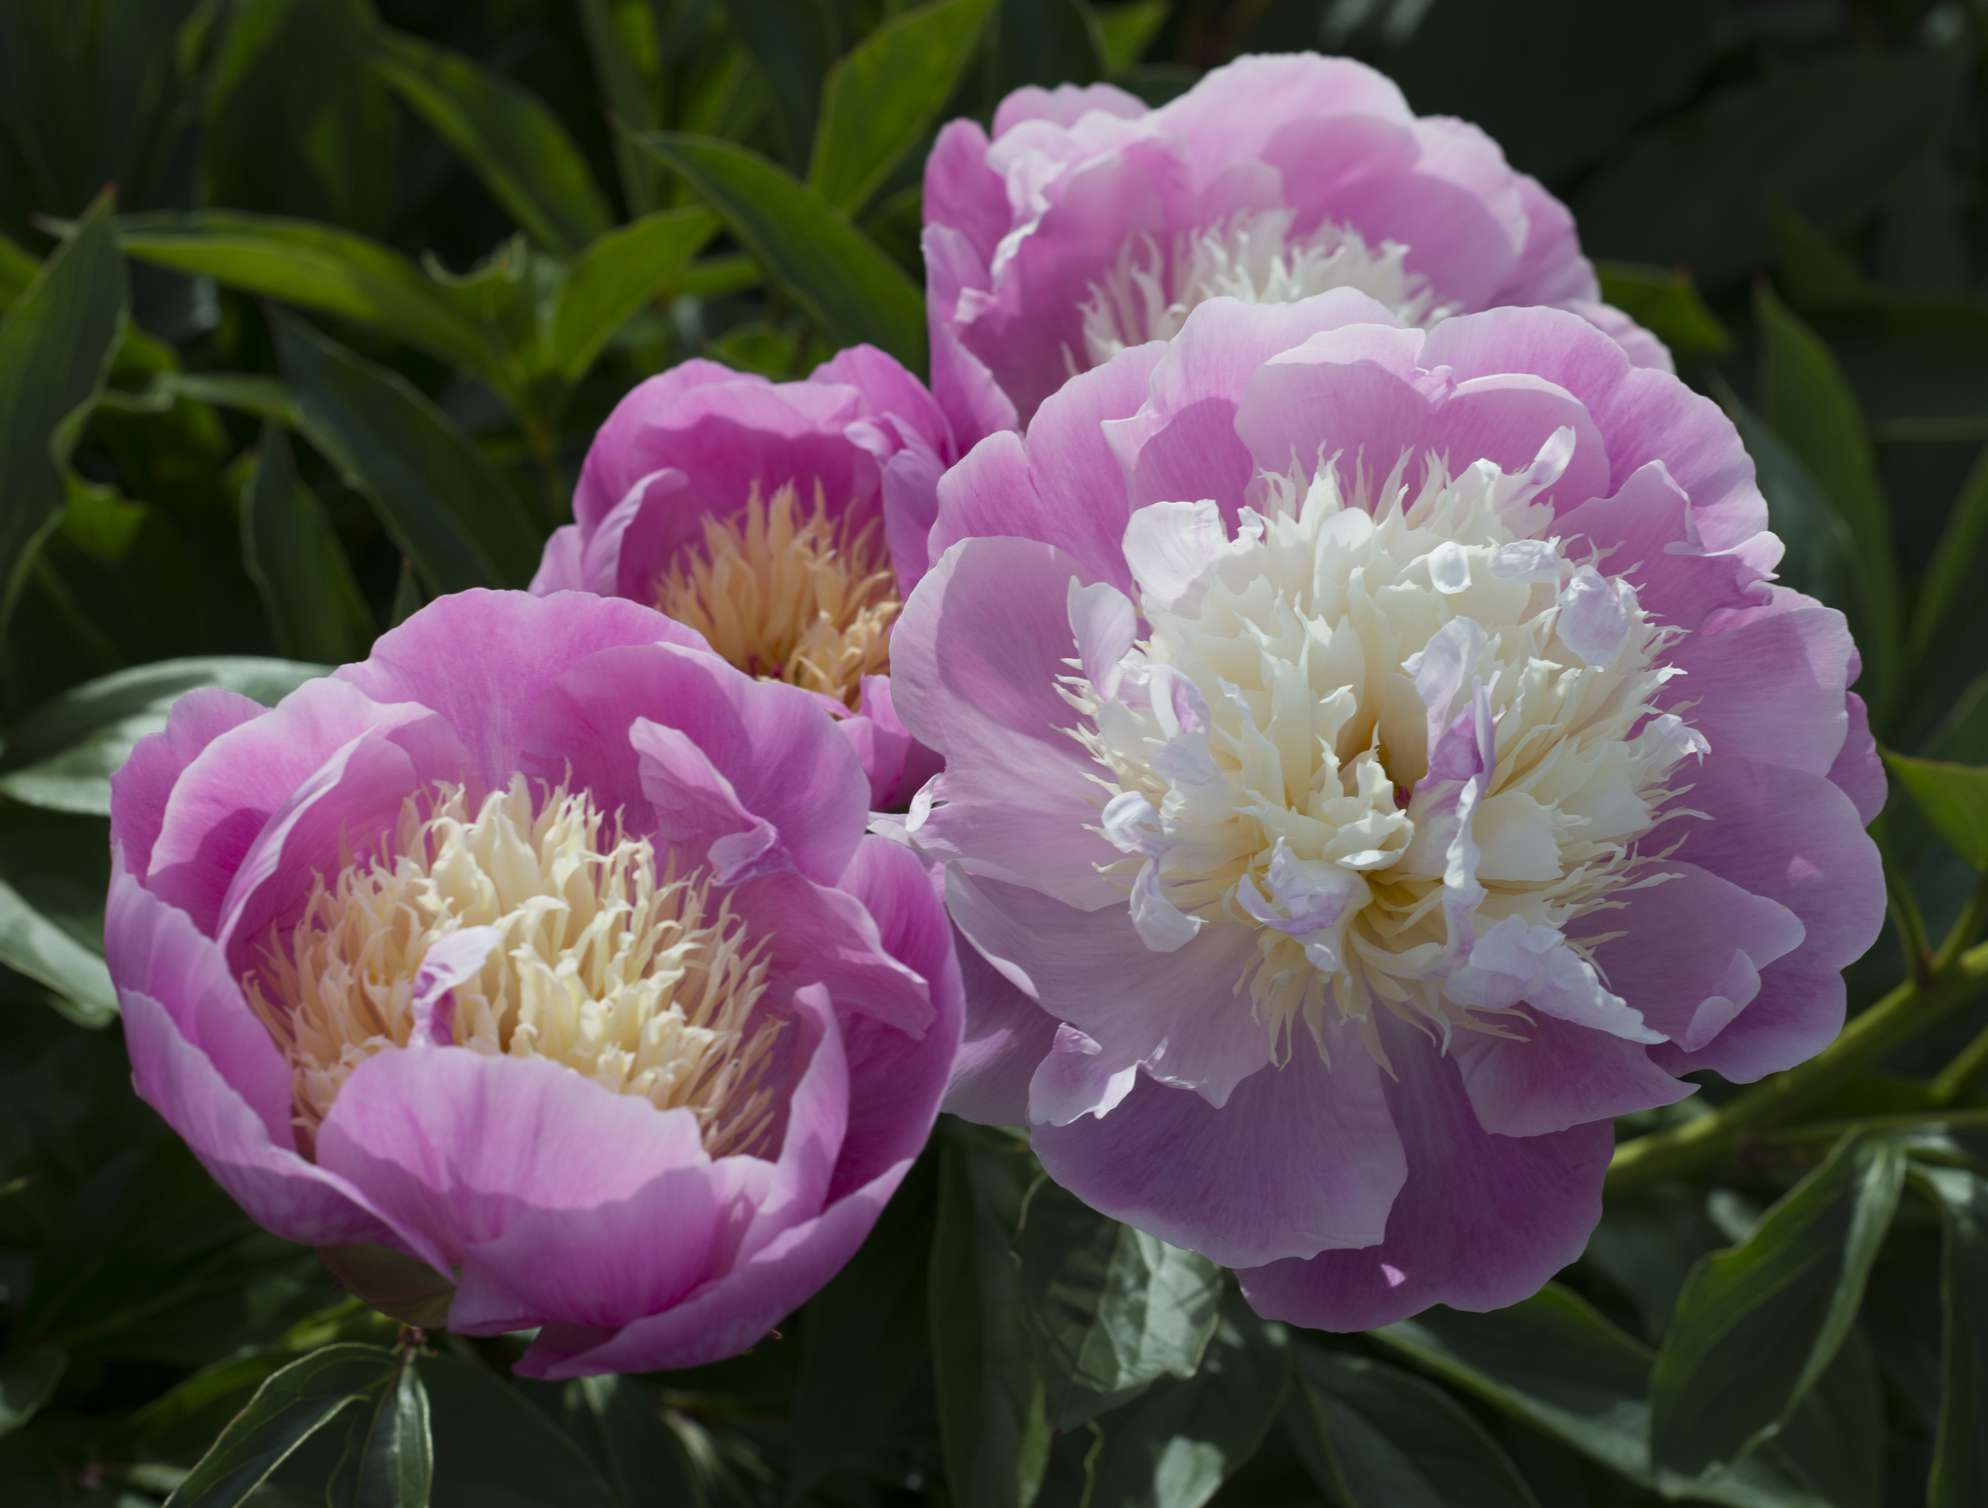 Pink and white peony flowers